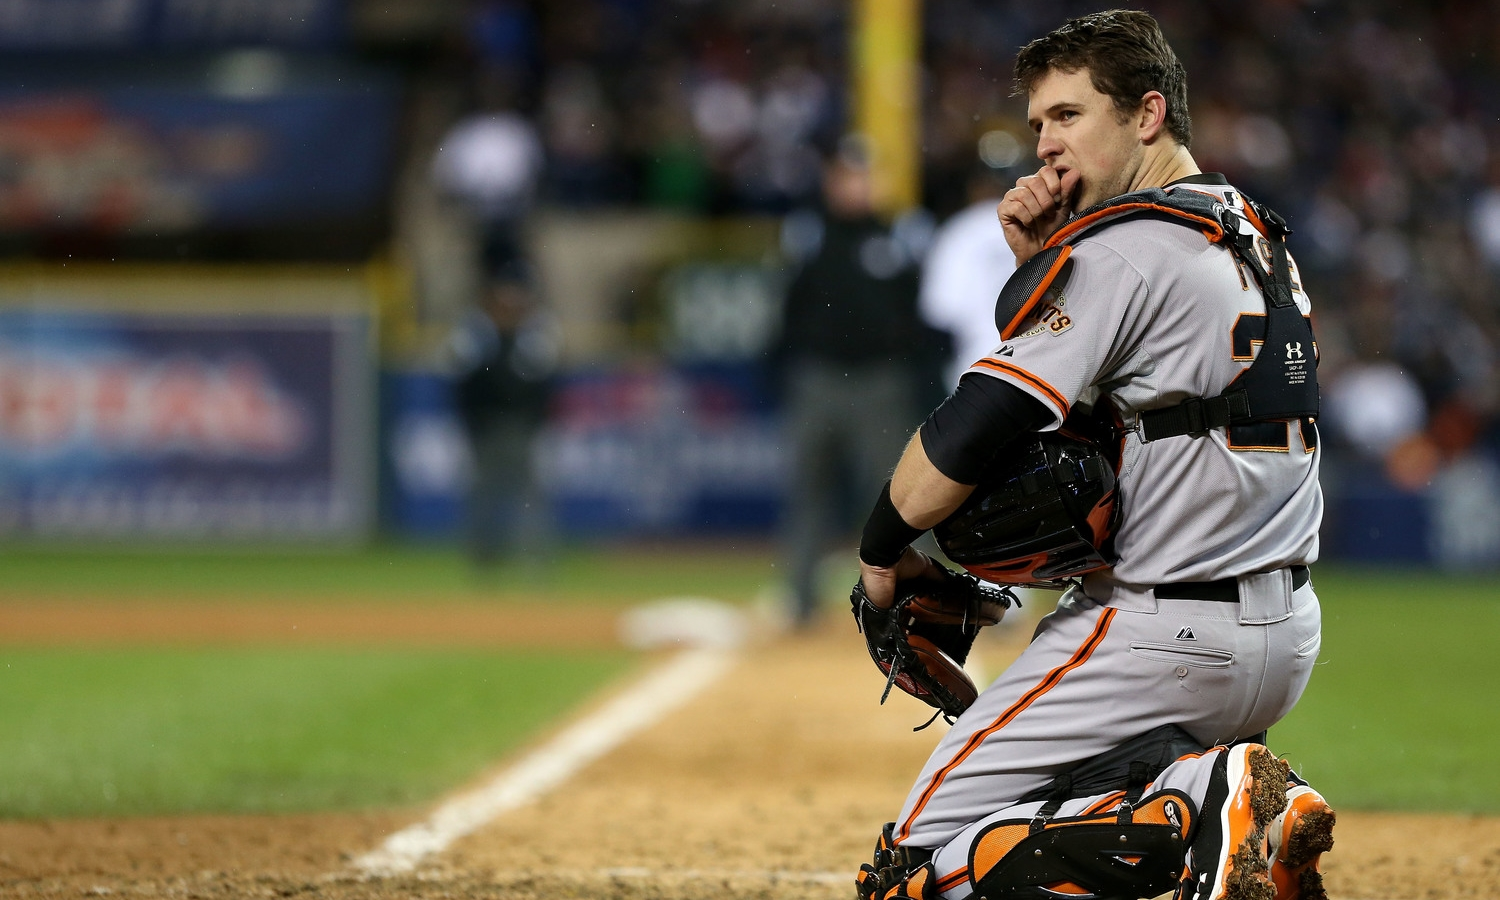 Buster Posey (Y-D '06-'07), San Francisco Giants. Photo by KQED, 2012.